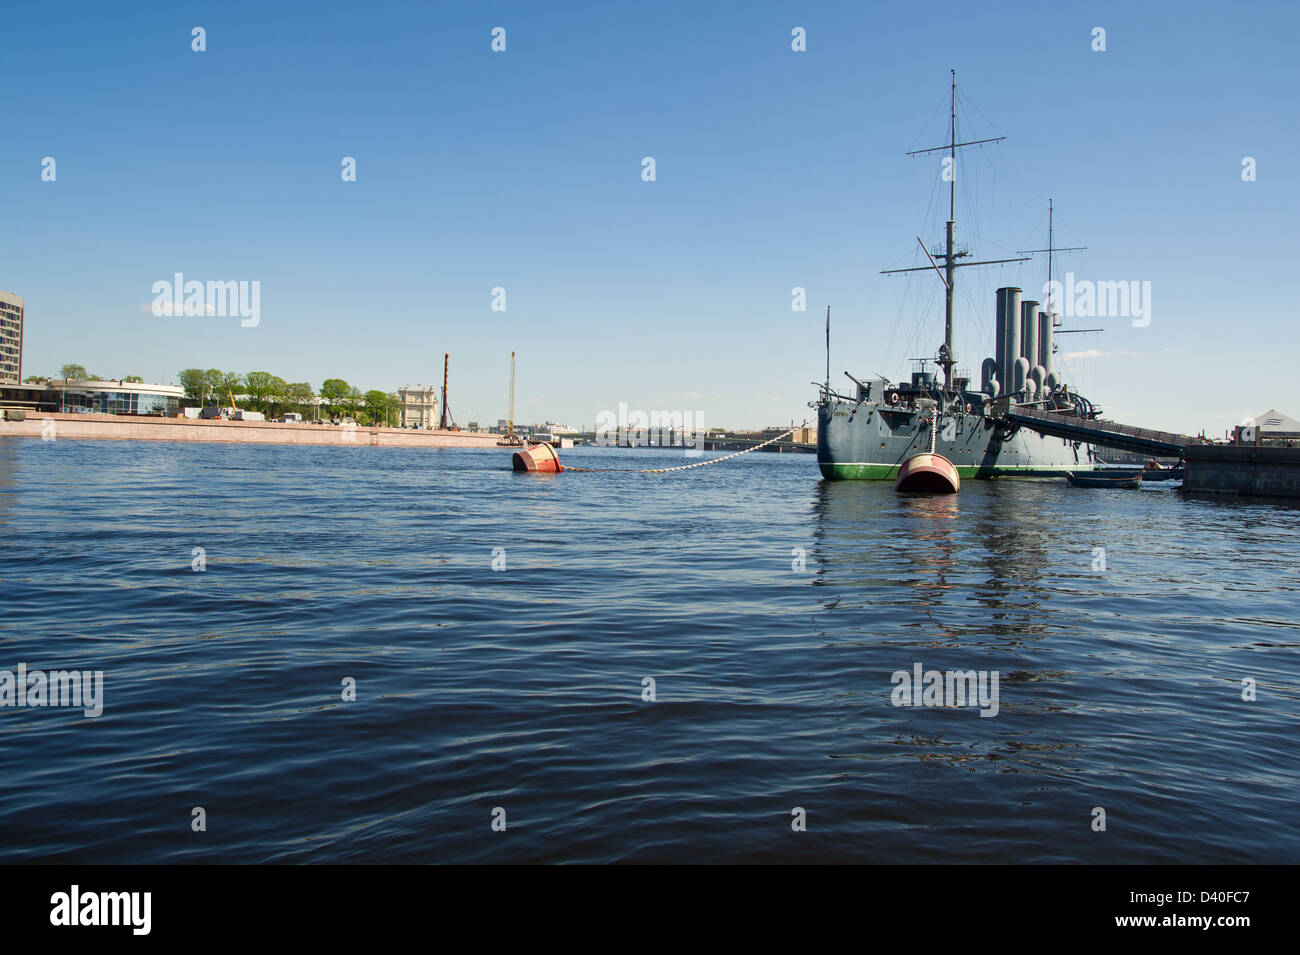 Cruiser Aurora as a symbol of the revolution in Russia - Stock Image